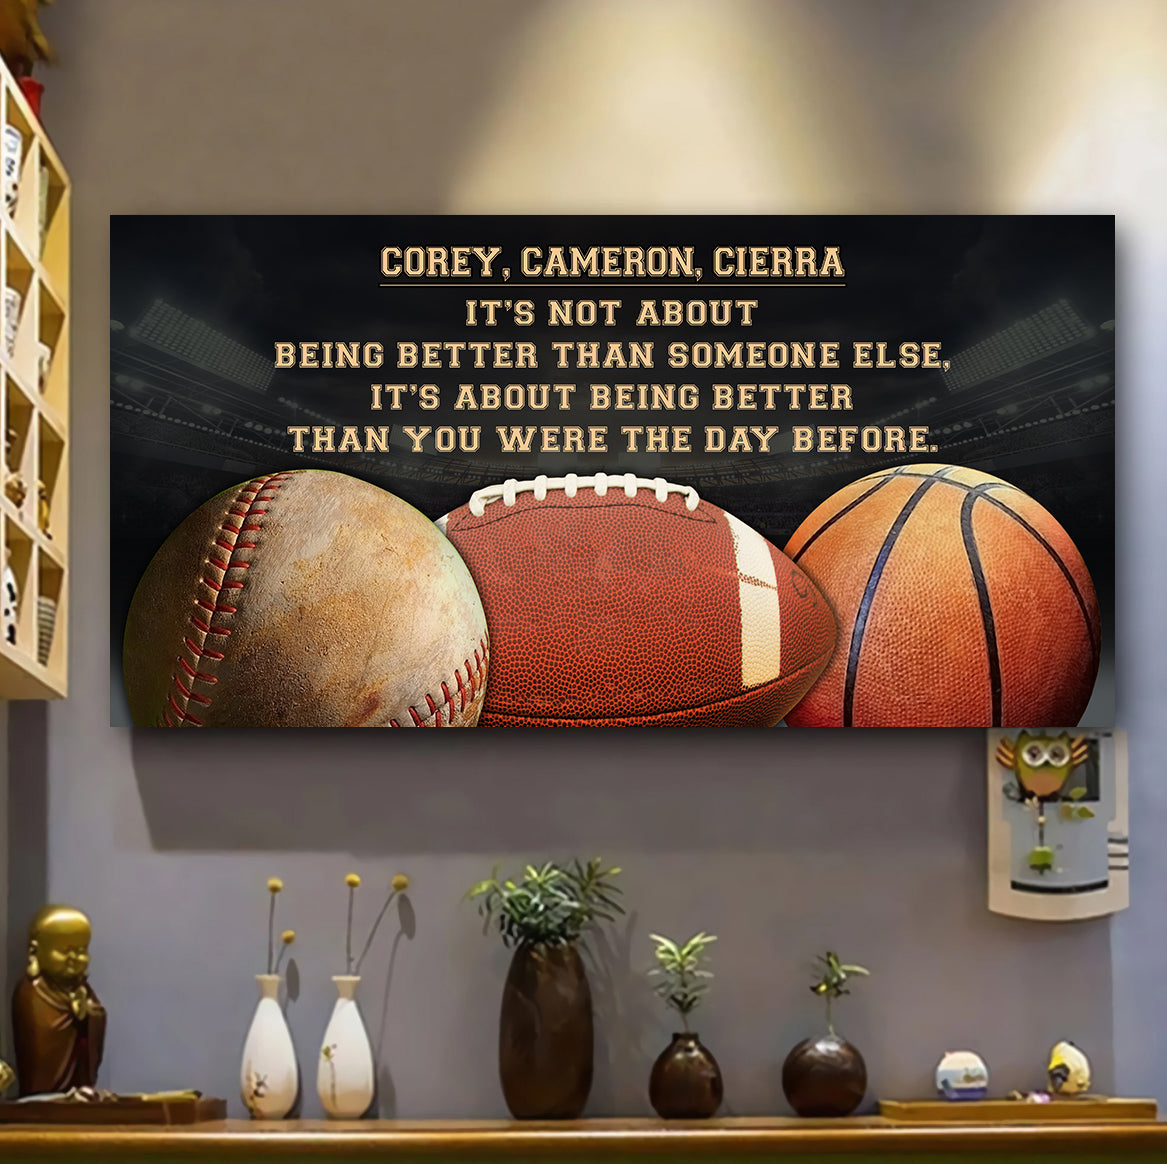 (LP334) Customizable Baseball - Basketball - Football Poster - It's not about - FREE SHIPPING ON ORDERS OVER $75